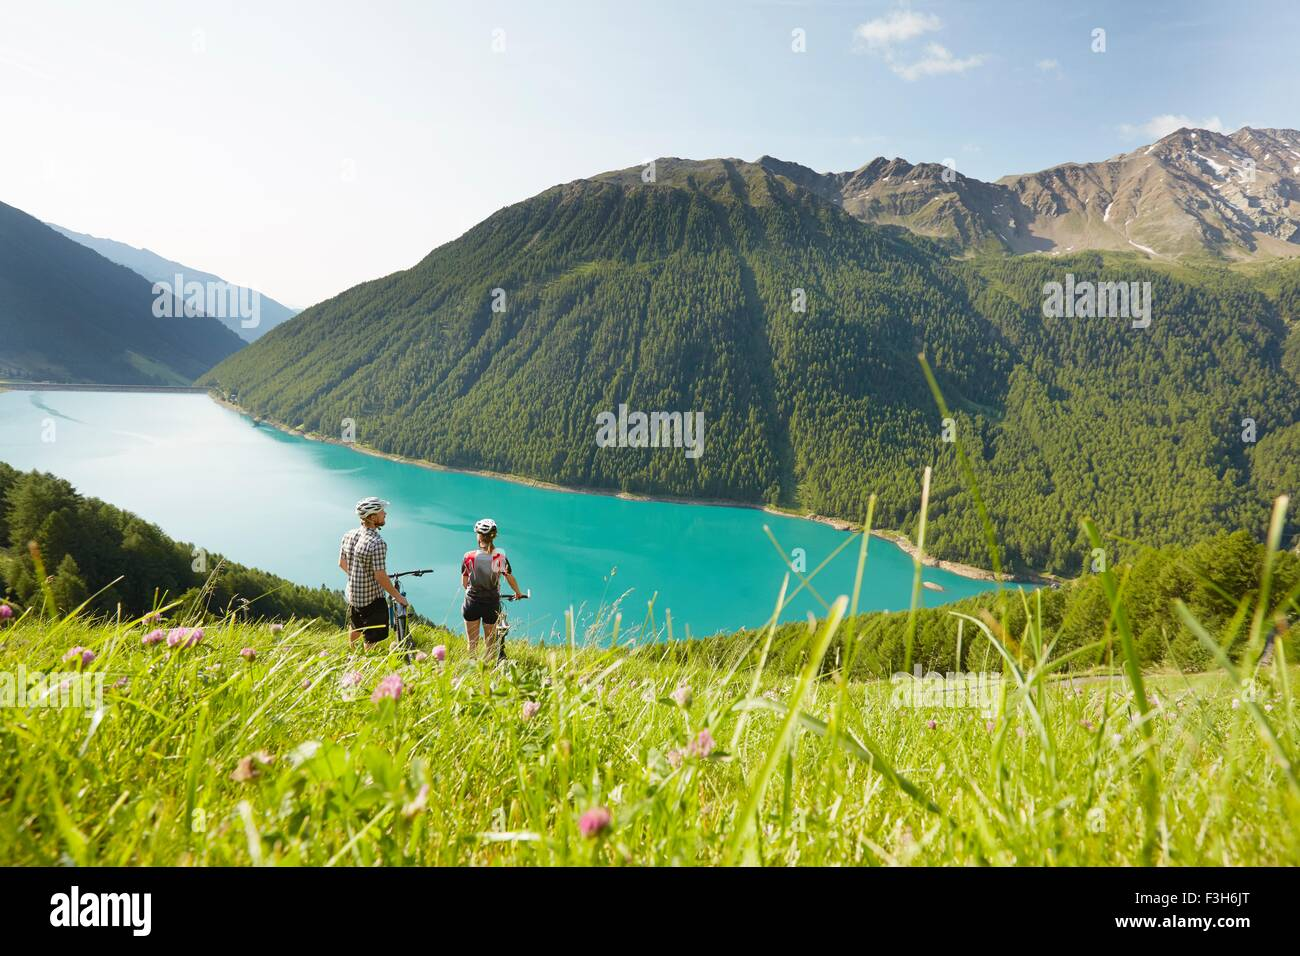 Young couple on mountain bikes looking out at Vernagt reservoir, Val Senales, South Tyrol, Italy - Stock Image